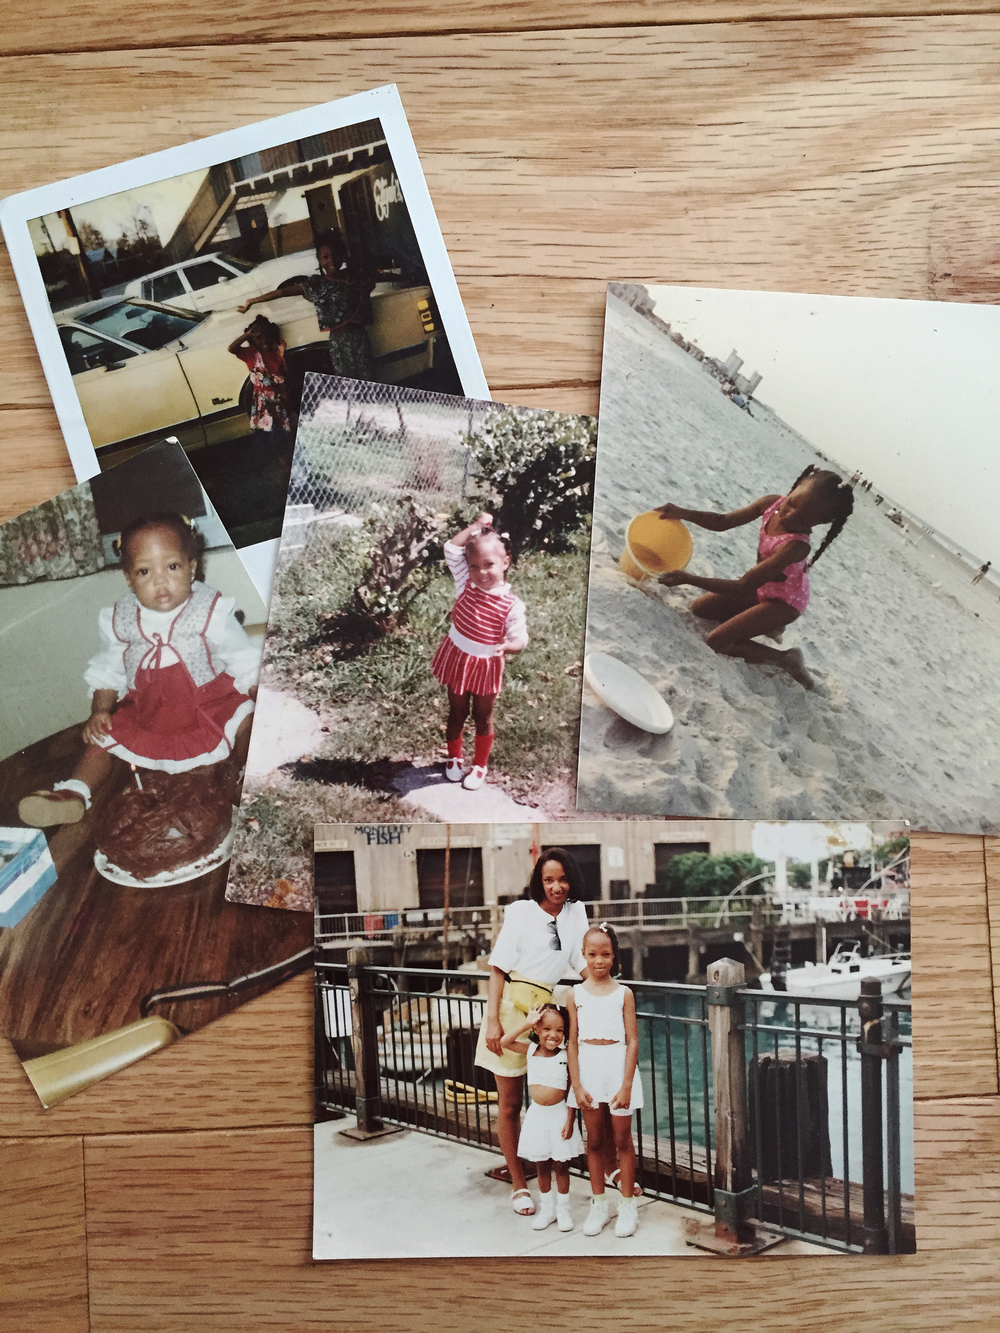 Personal Archive: Family photographs of Renata Cherlise